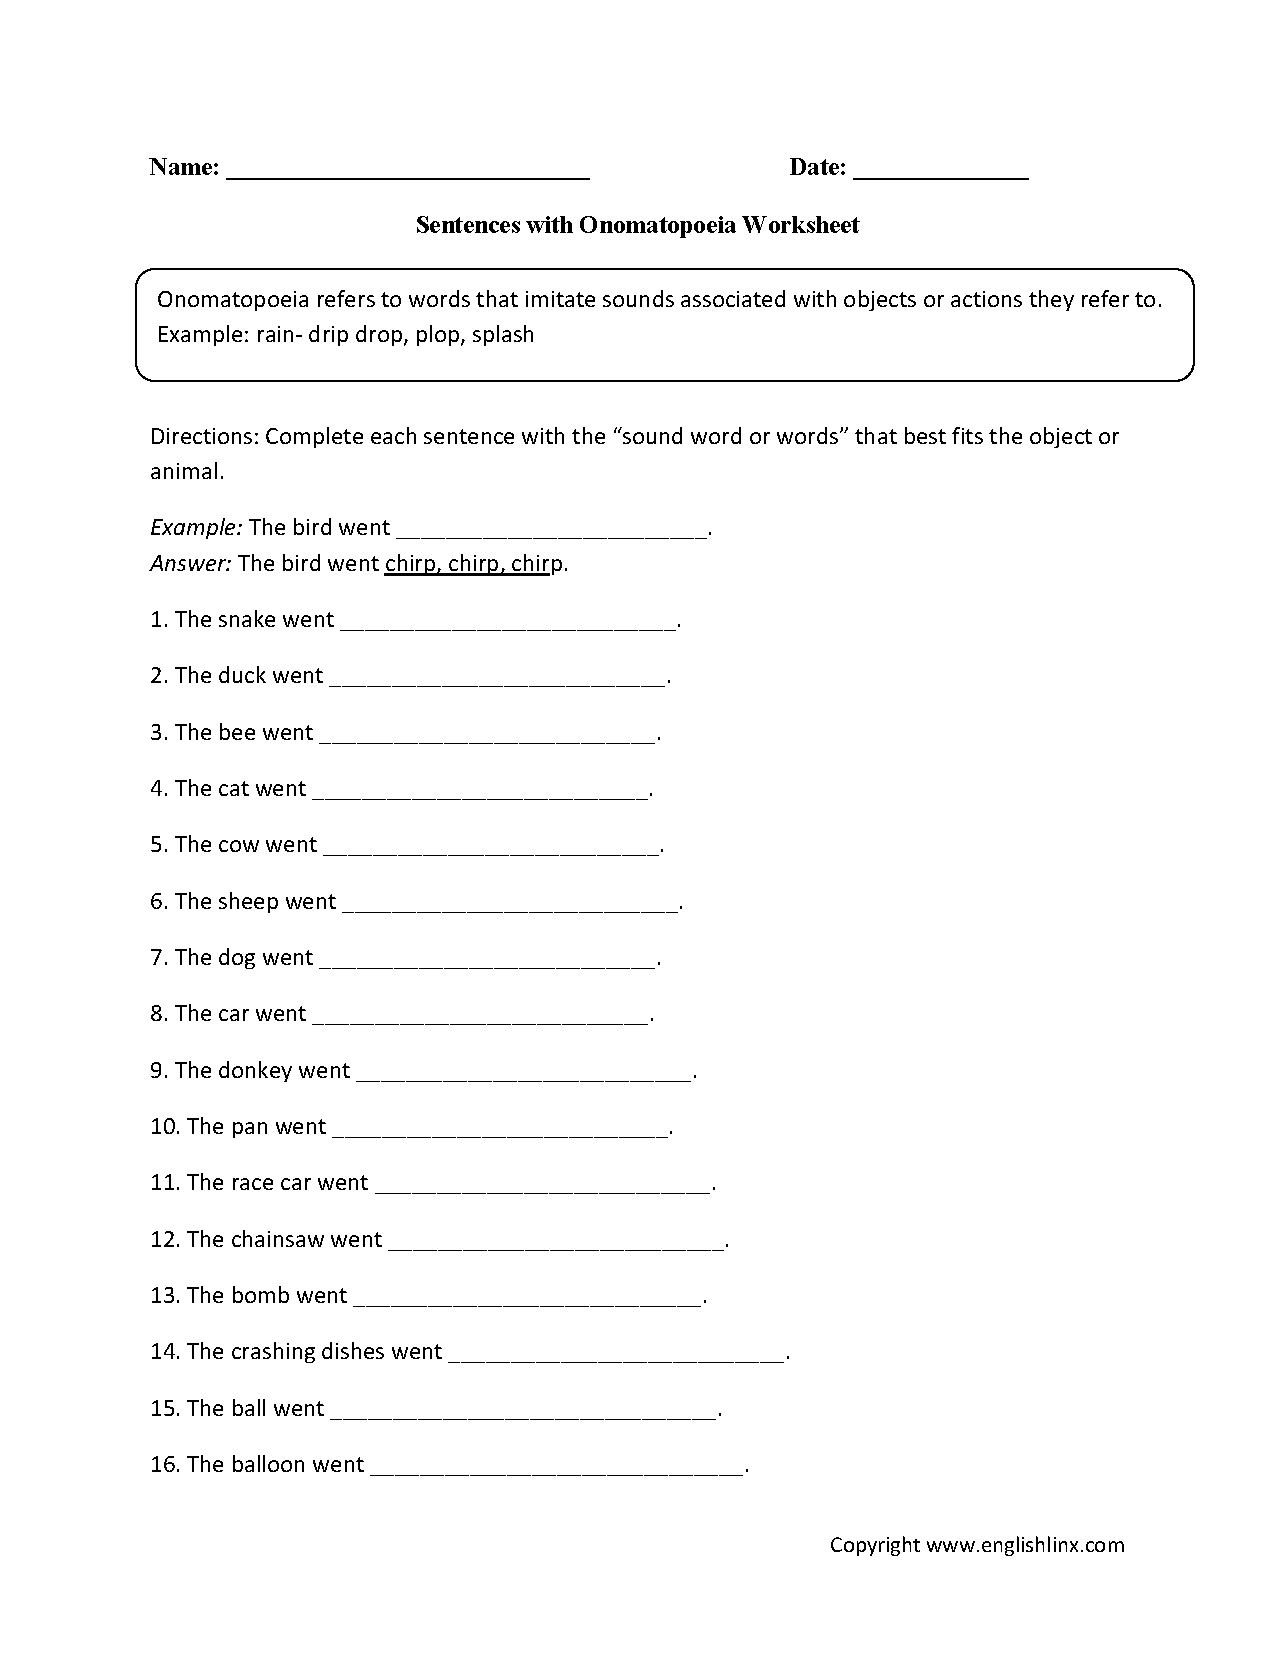 Sentences With Onomatopoeia Worksheet With Images